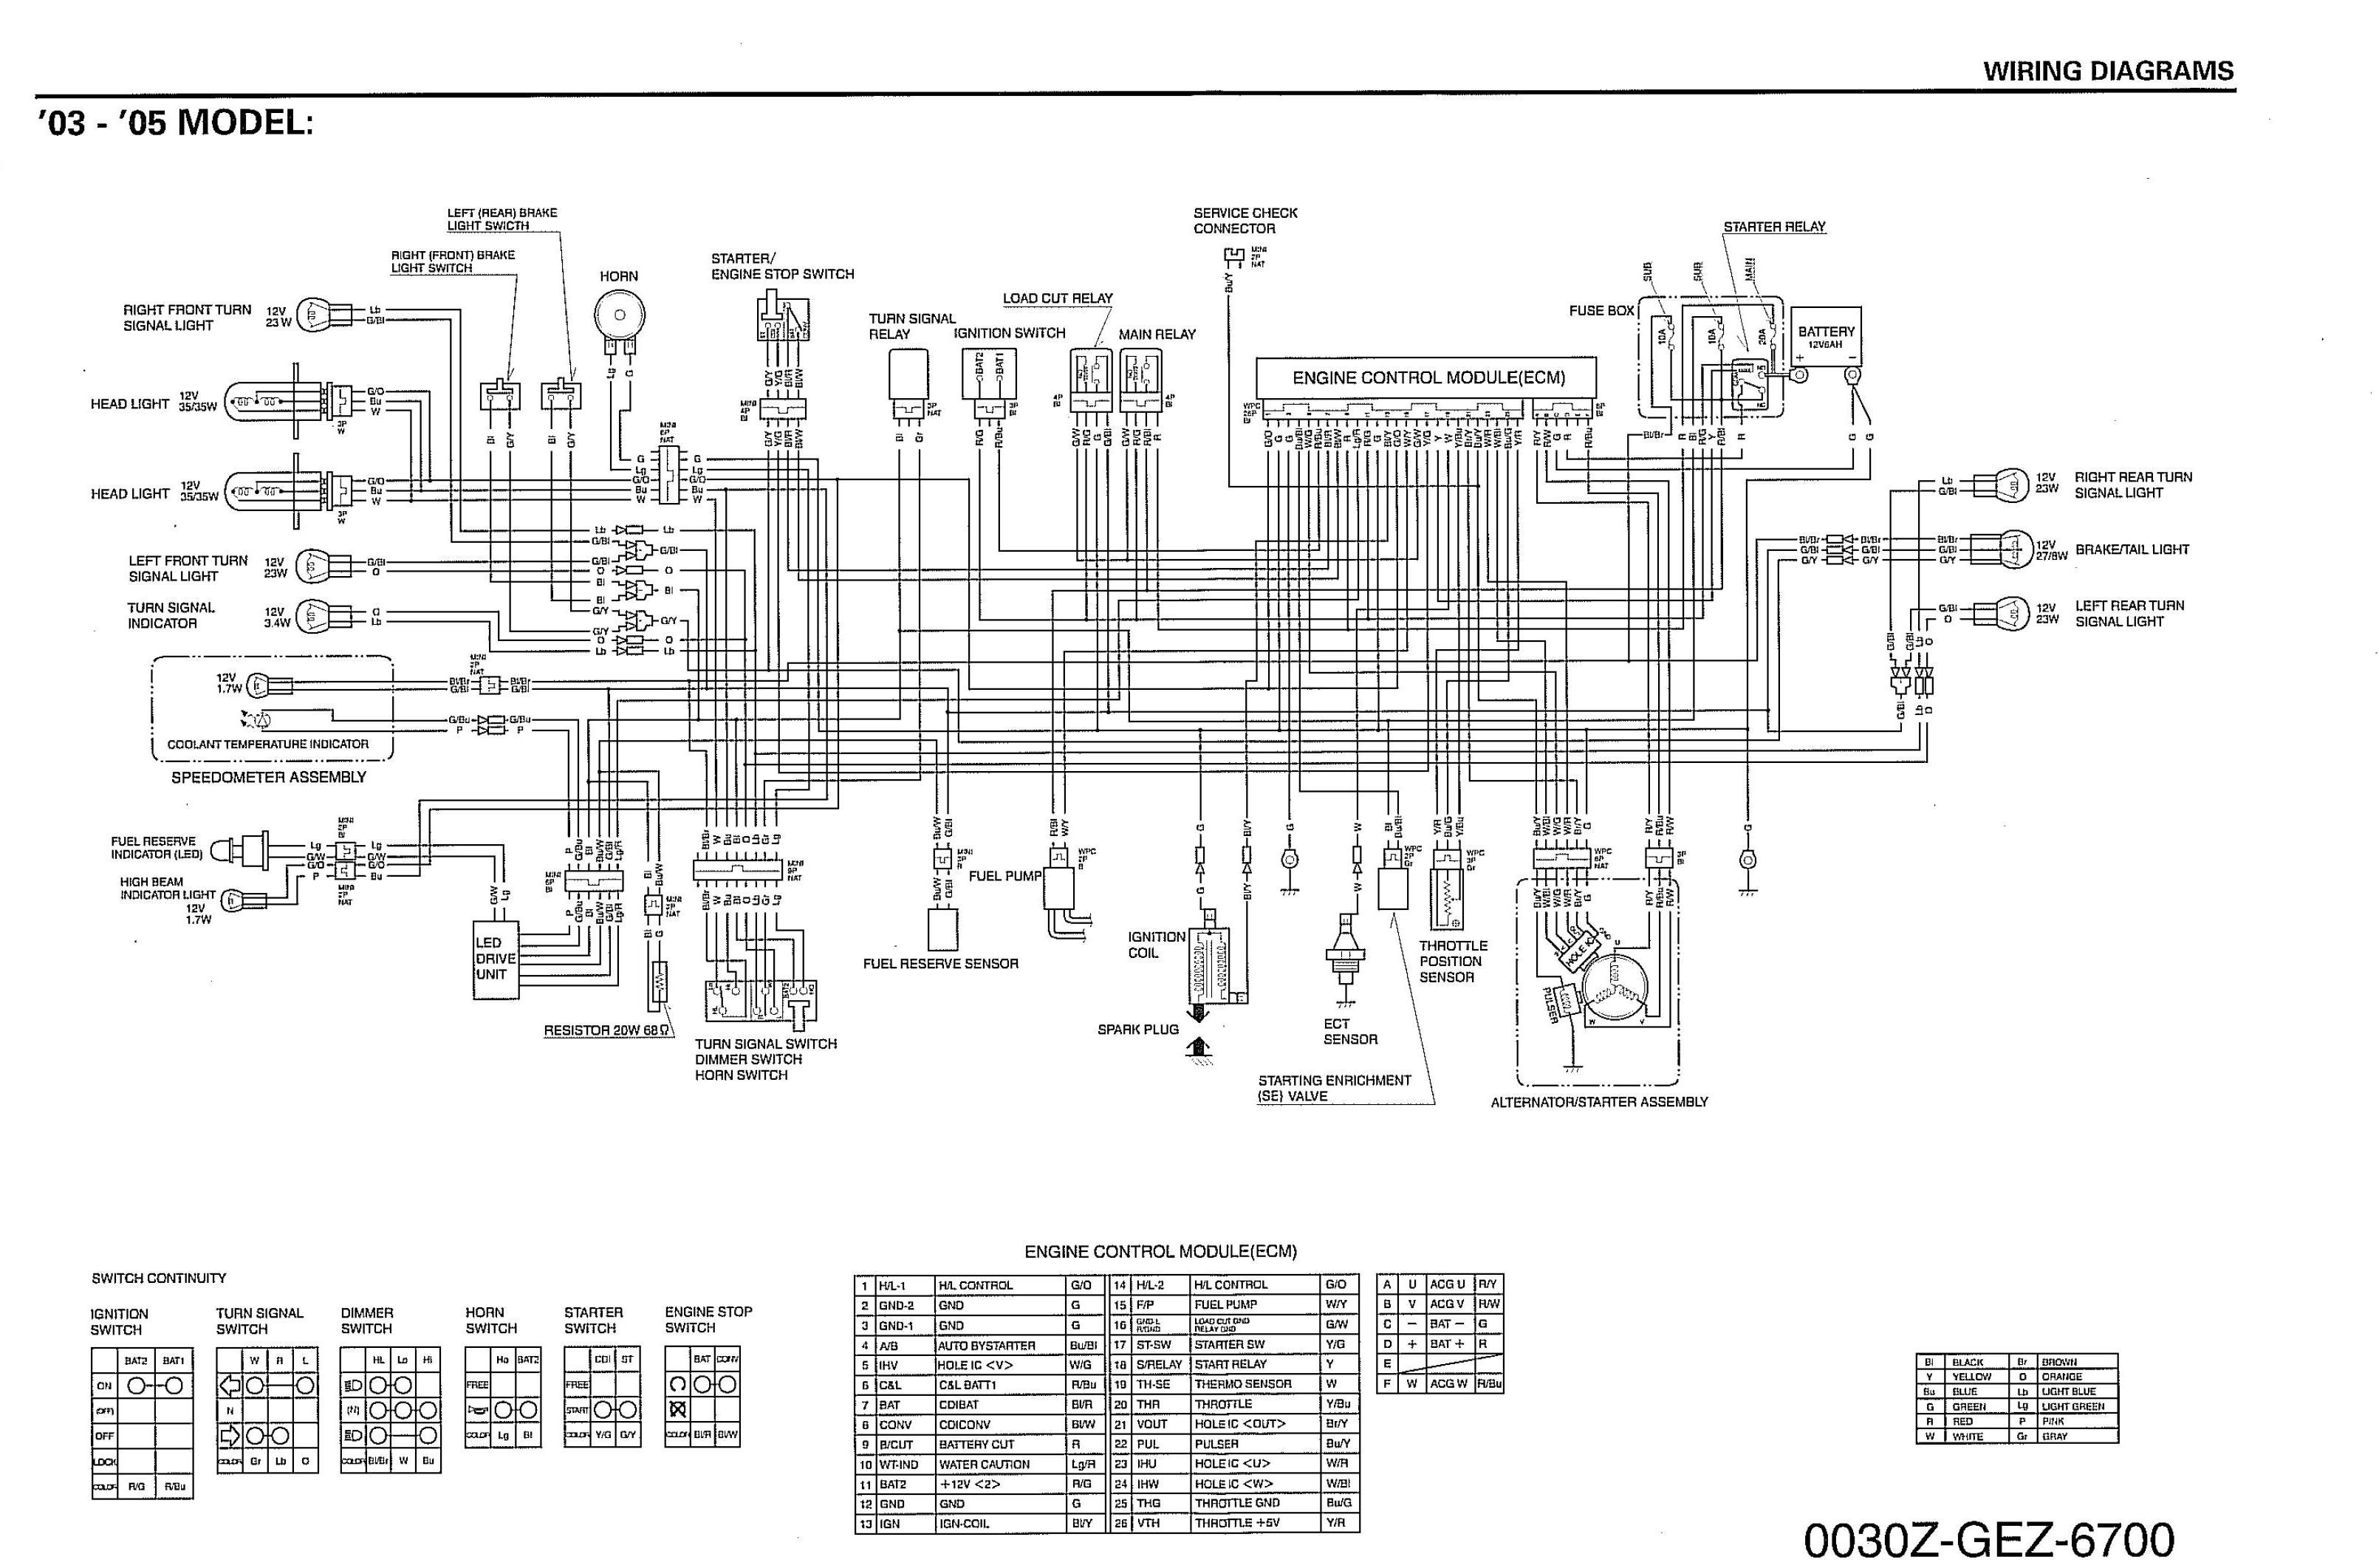 2004 Bmw 545i Engine Diagram 2004 BMW 745Li Engine Diagram